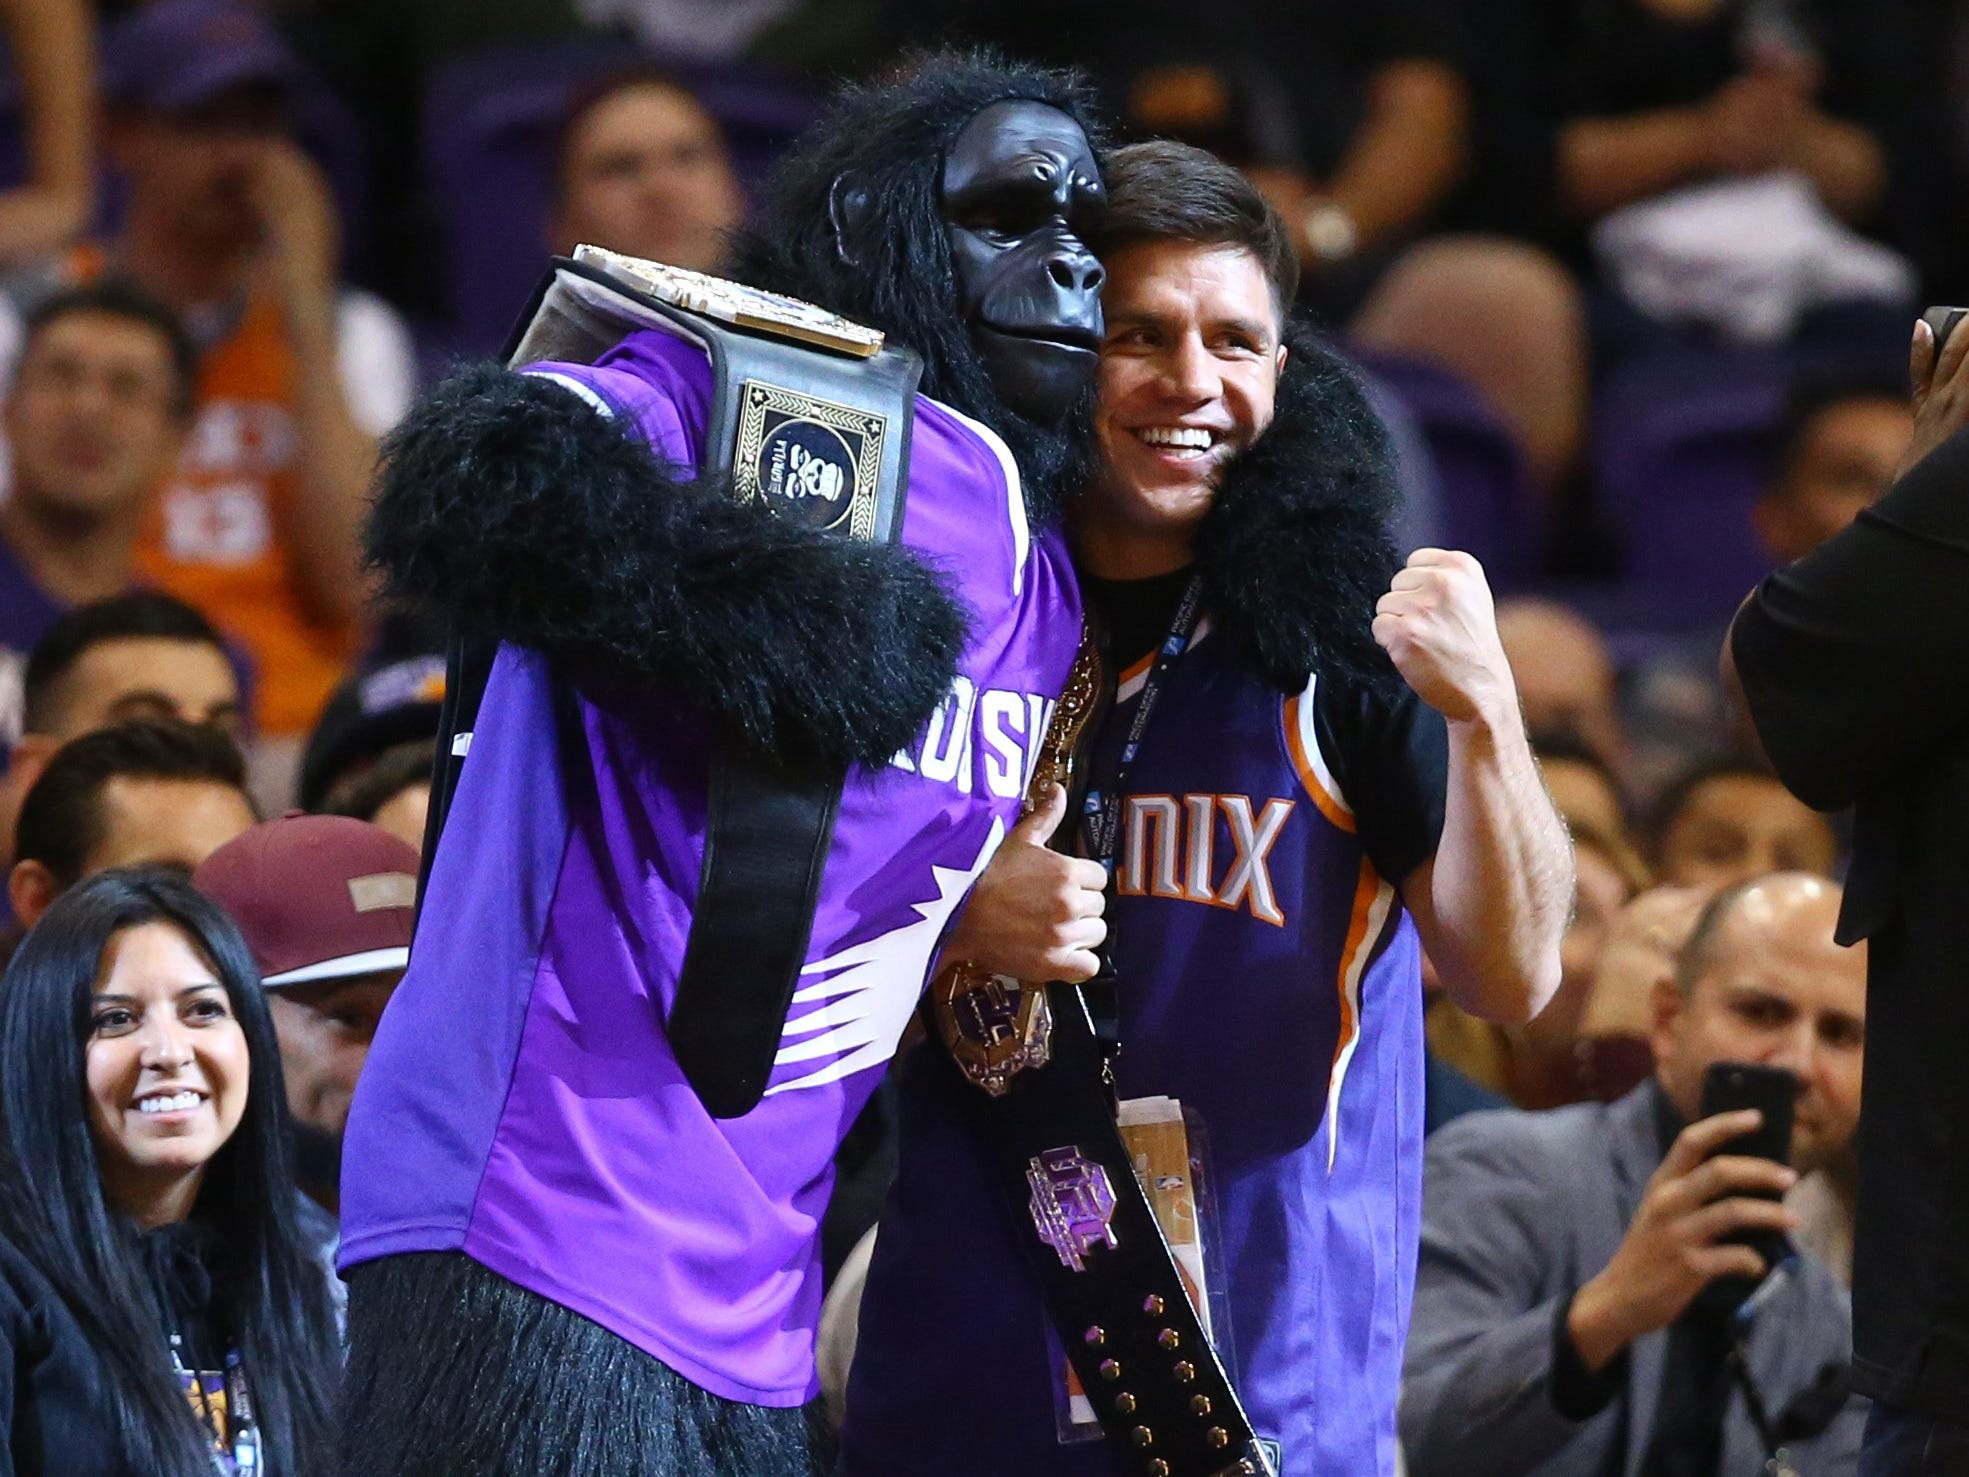 Nov. 2: UFC flyweight champion Henry Cejudo, who is based in Phoenix, poses with the Suns Gorilla at Talking Stick Resort Arena.